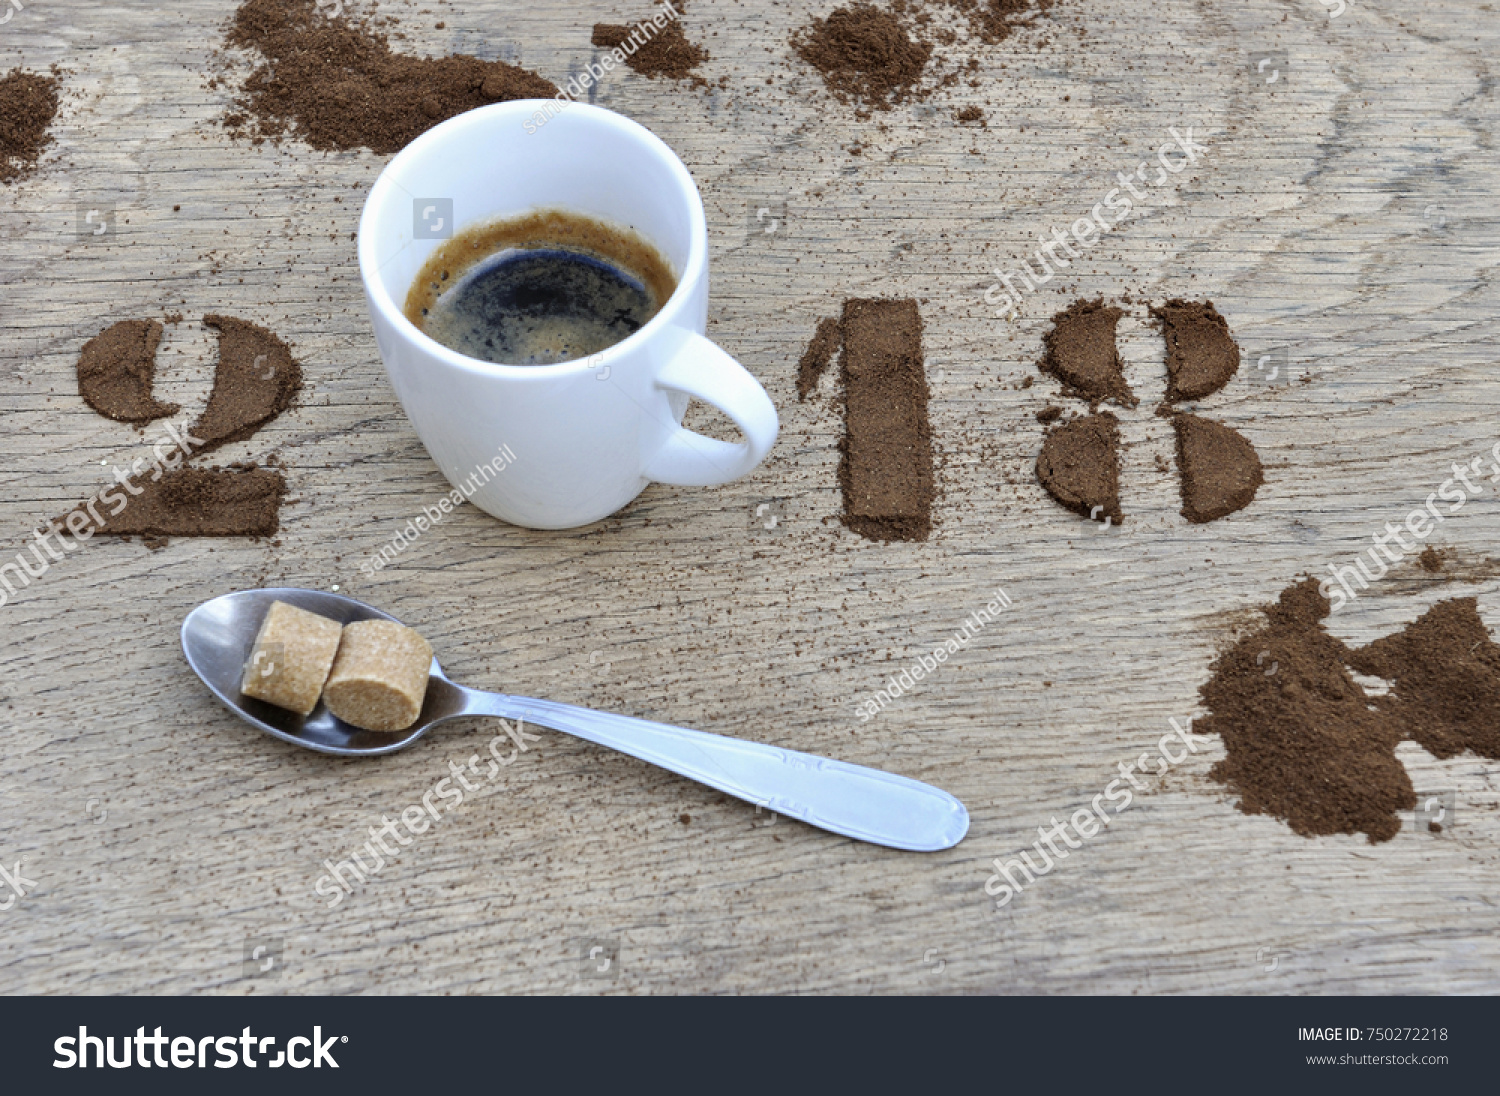 ground coffee stock photo - photo #33